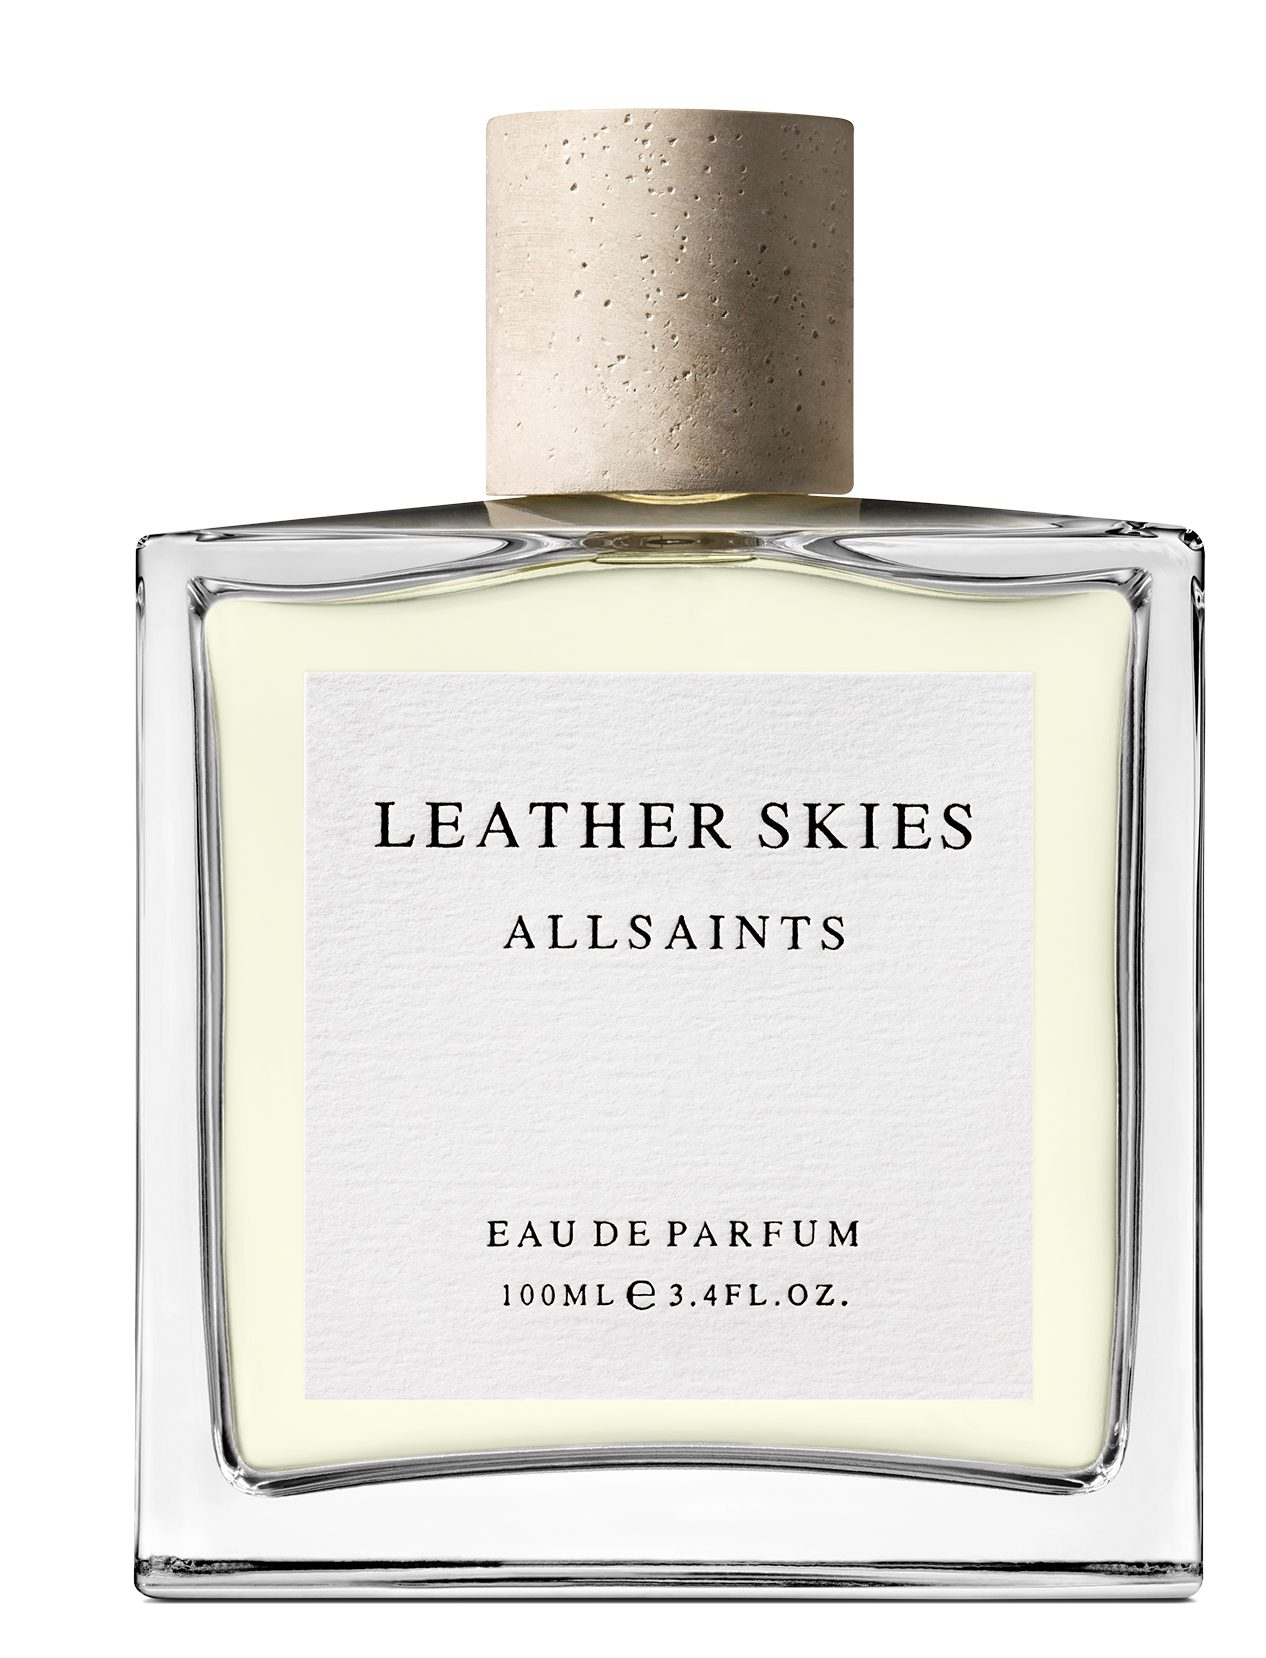 ALLSAINTS_LEATHER_SKIES